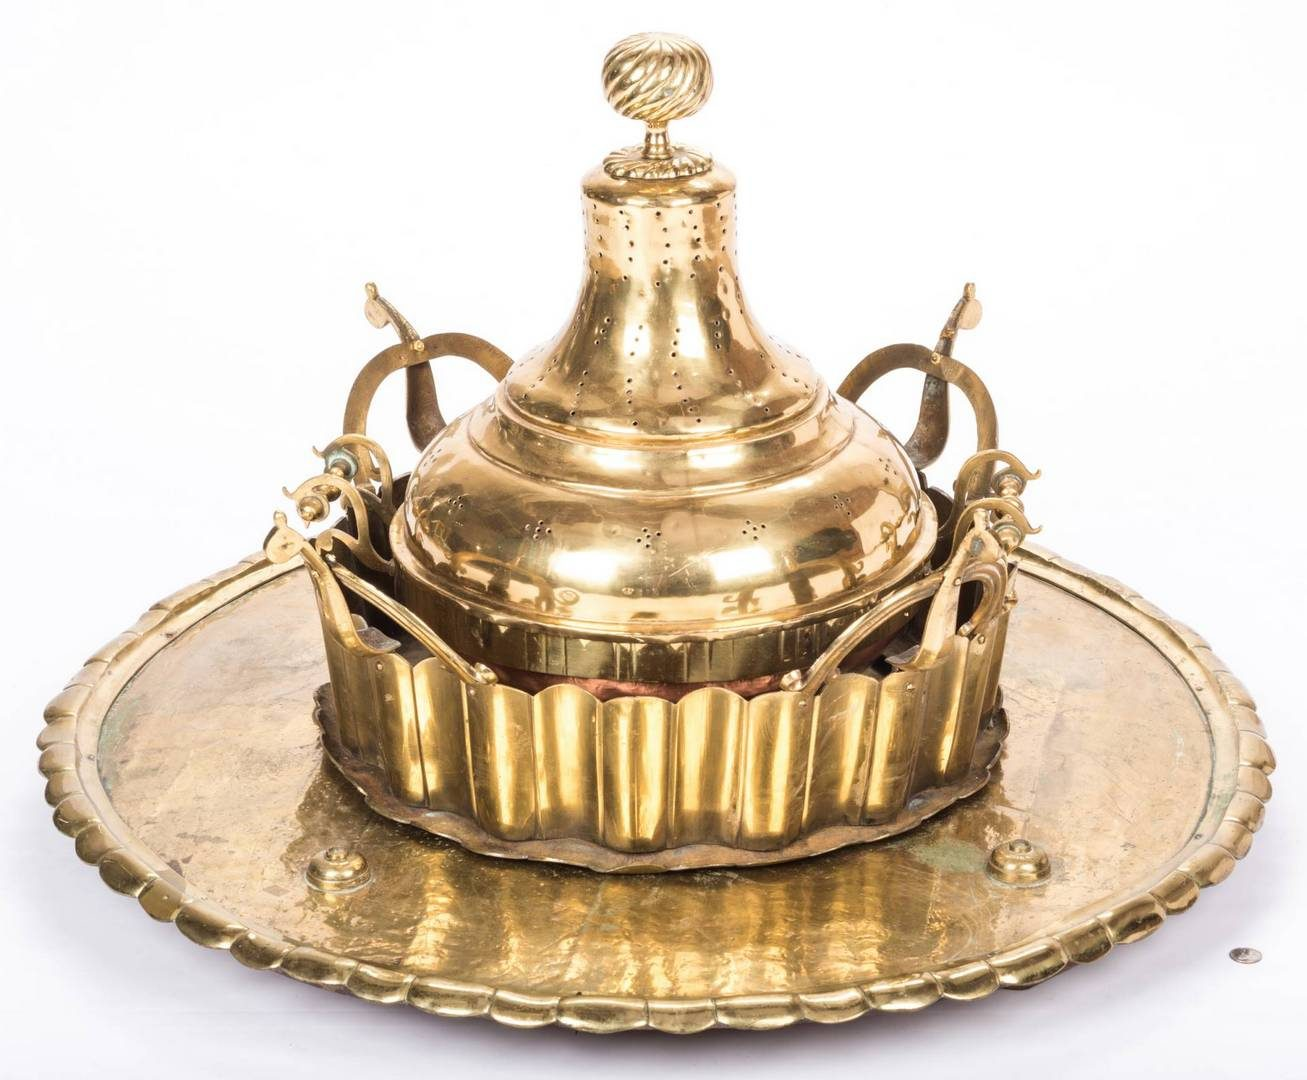 Lot 206: Large Brass Brazier or Censer with tray, 4 pcs.